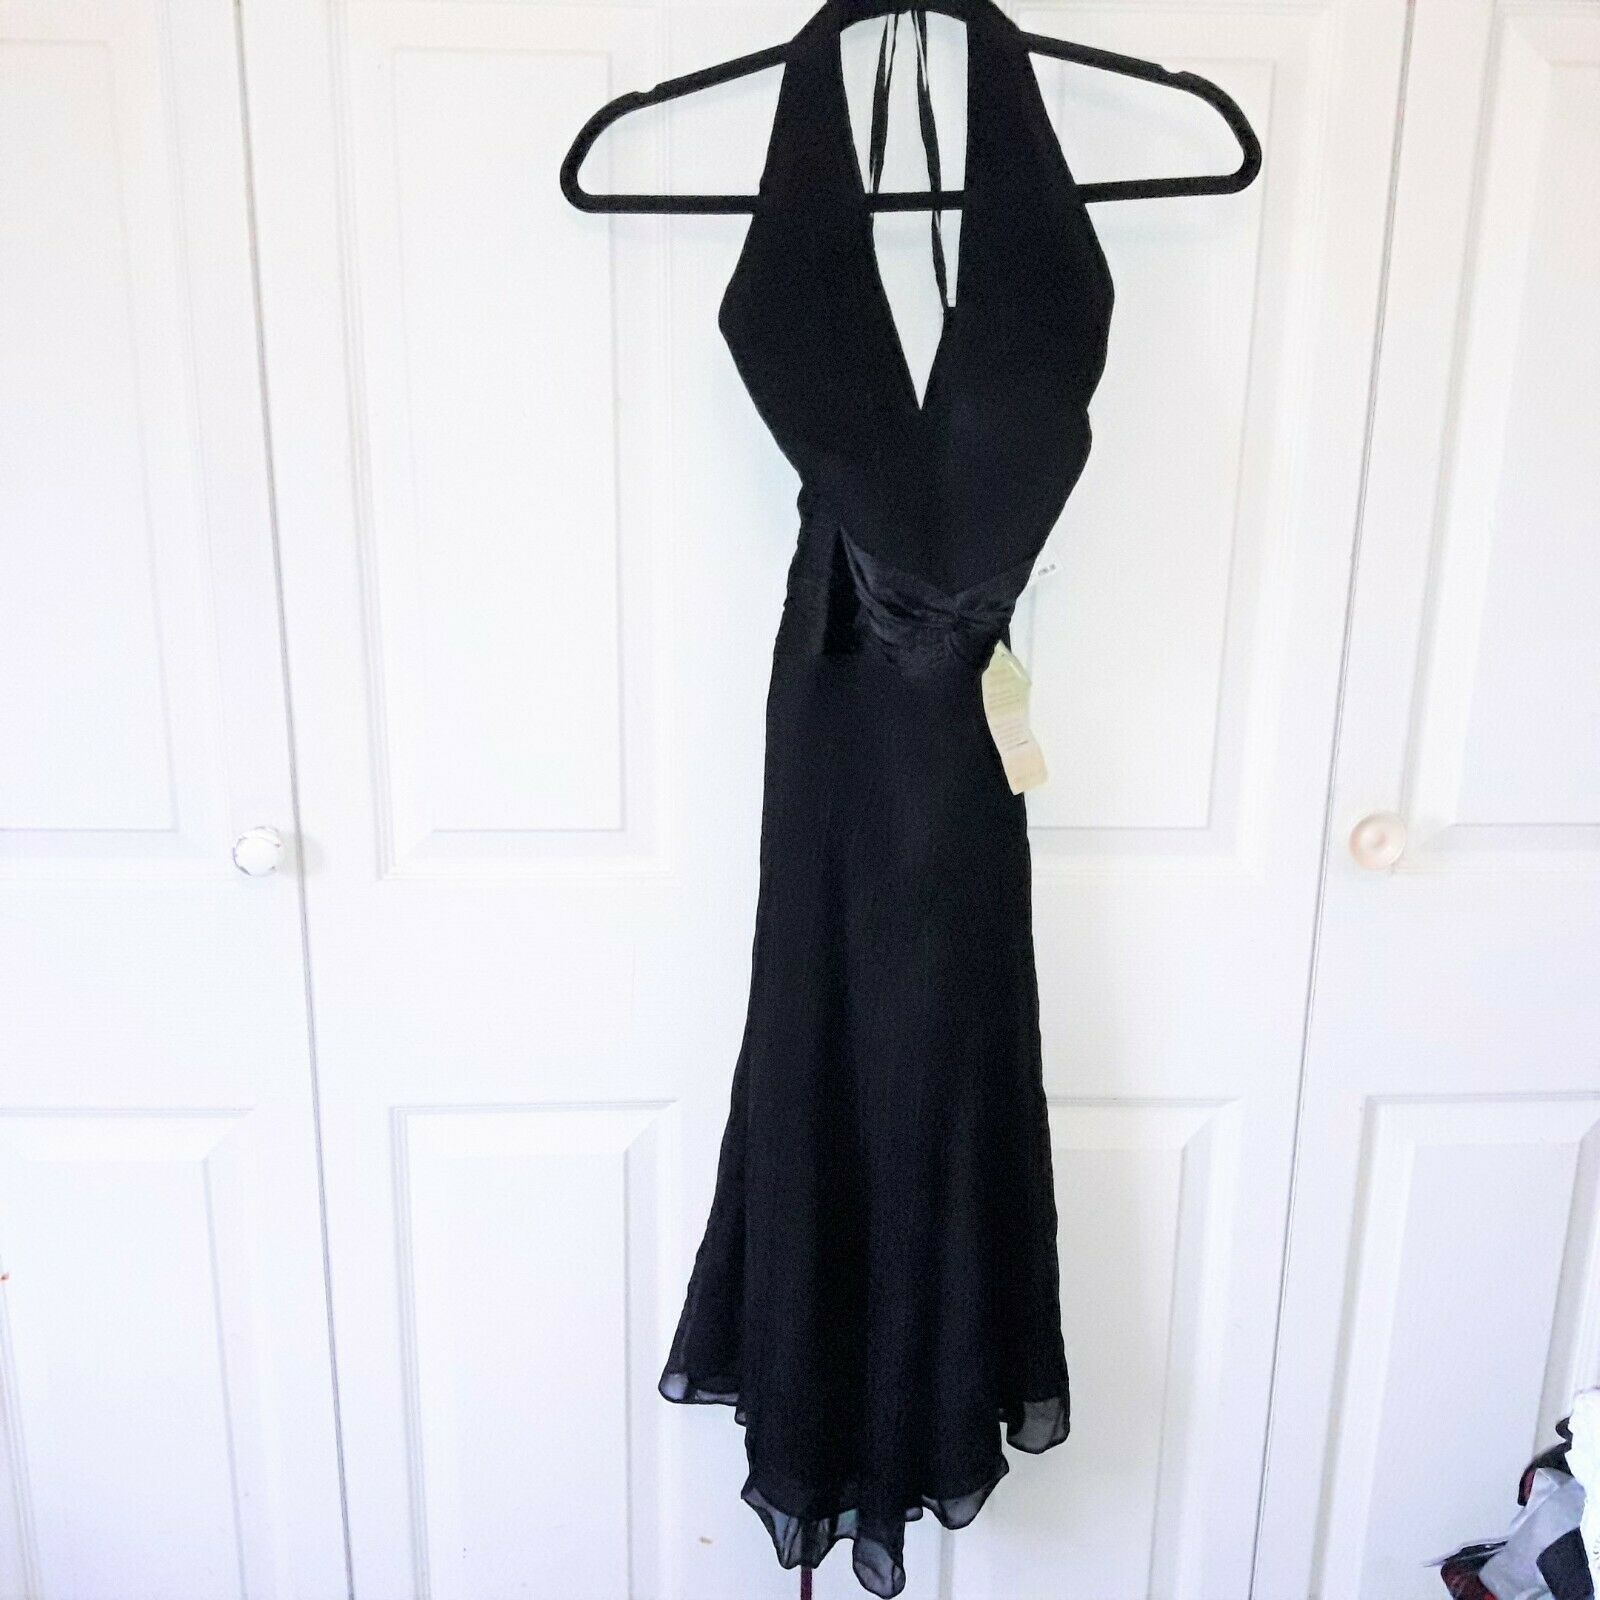 Primary image for New With Tags Anne Klein Halter Dress 100% Silk Size 4 Black